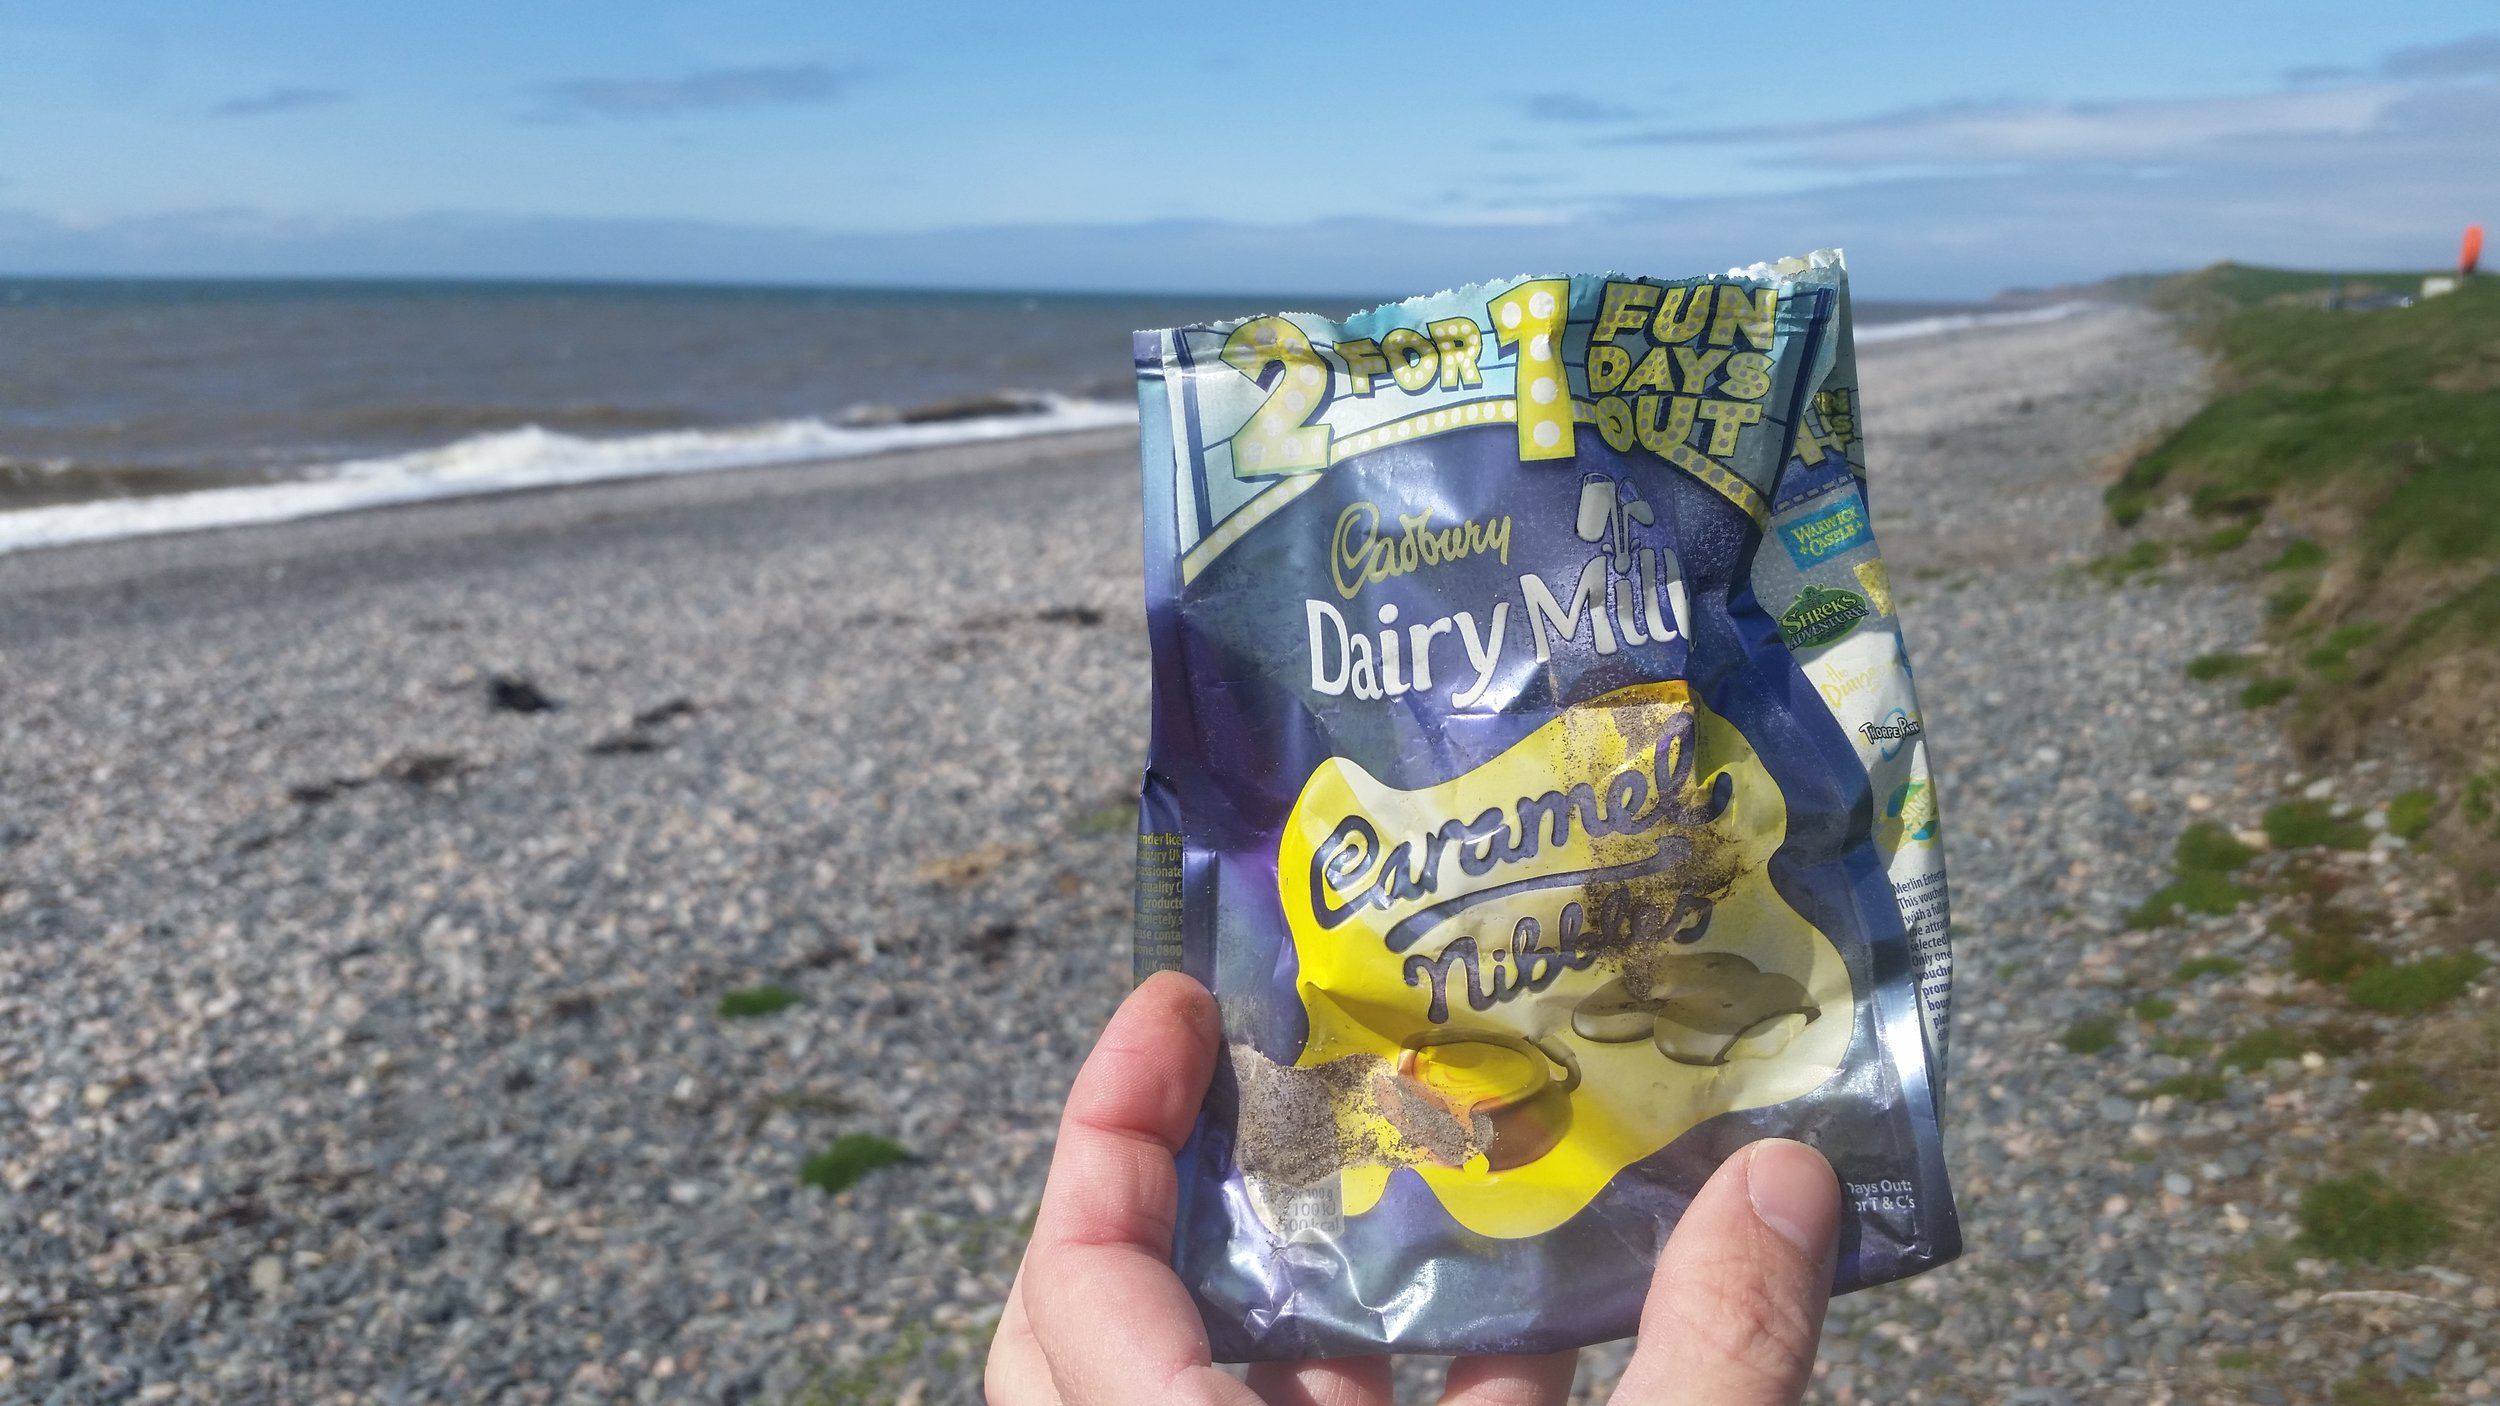 Cadbury 'Fun Day' include littering beaches?